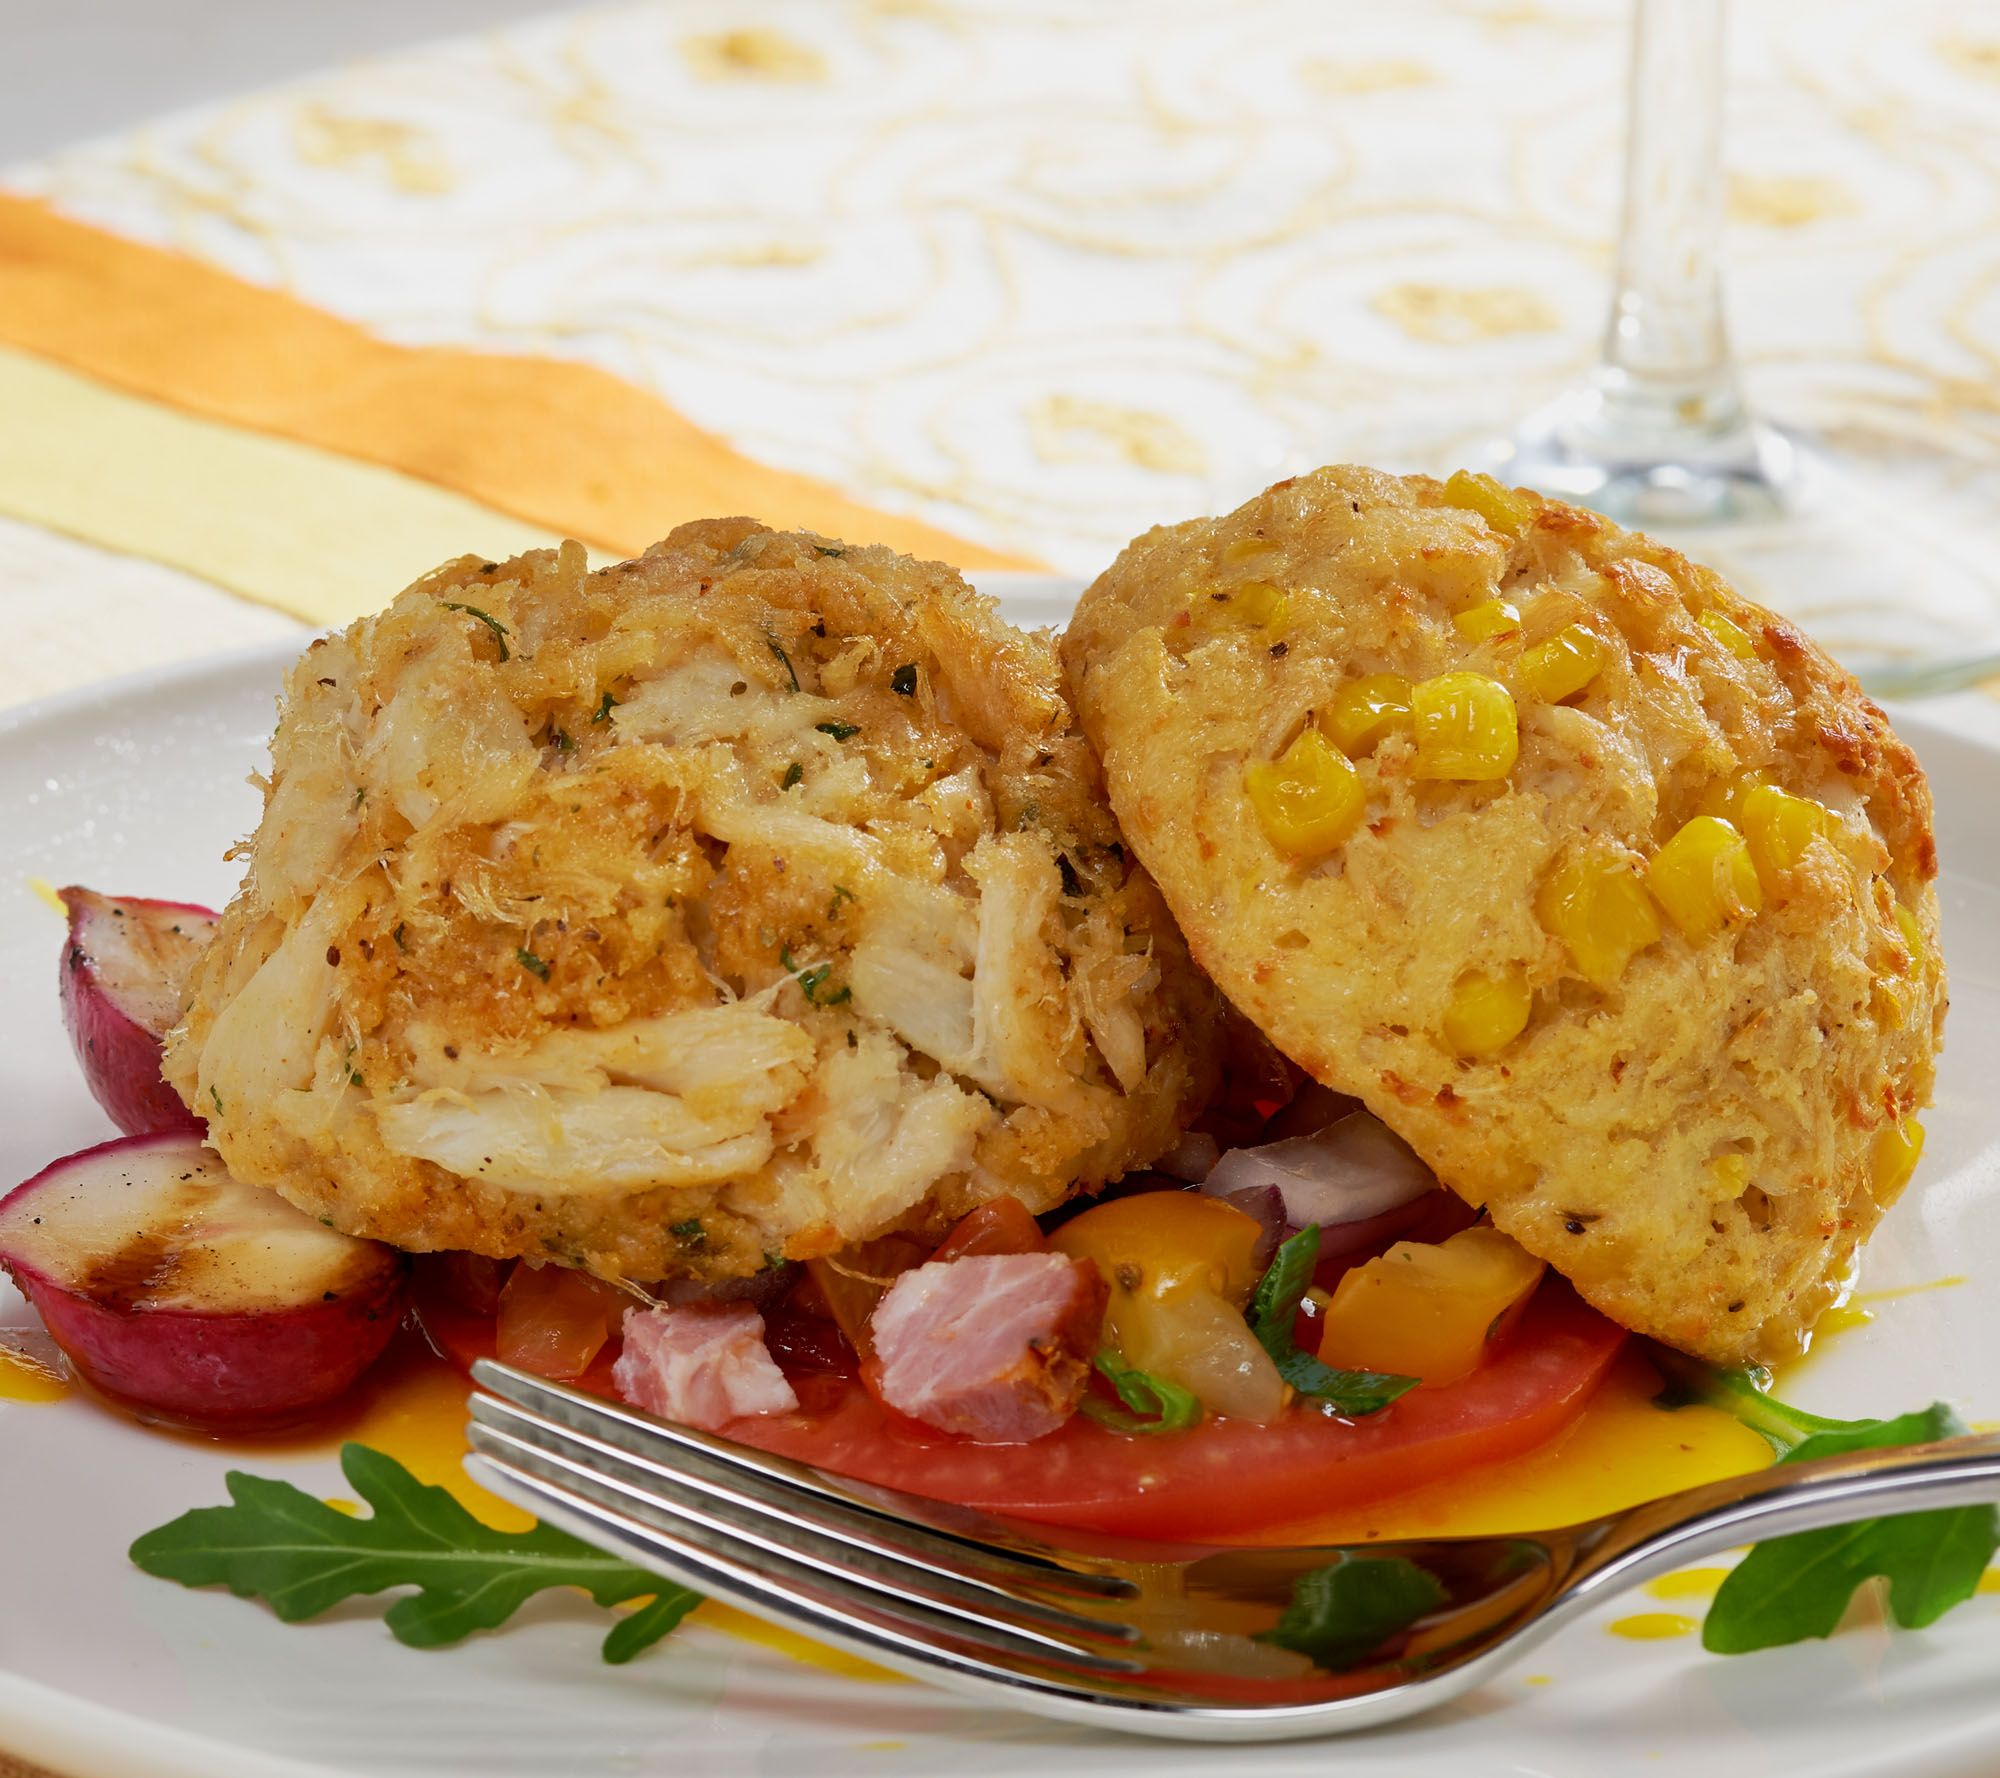 Great Gourmet (20) 4 oz. Eastern Shore Crab Cake - Page 1 — QVC.com